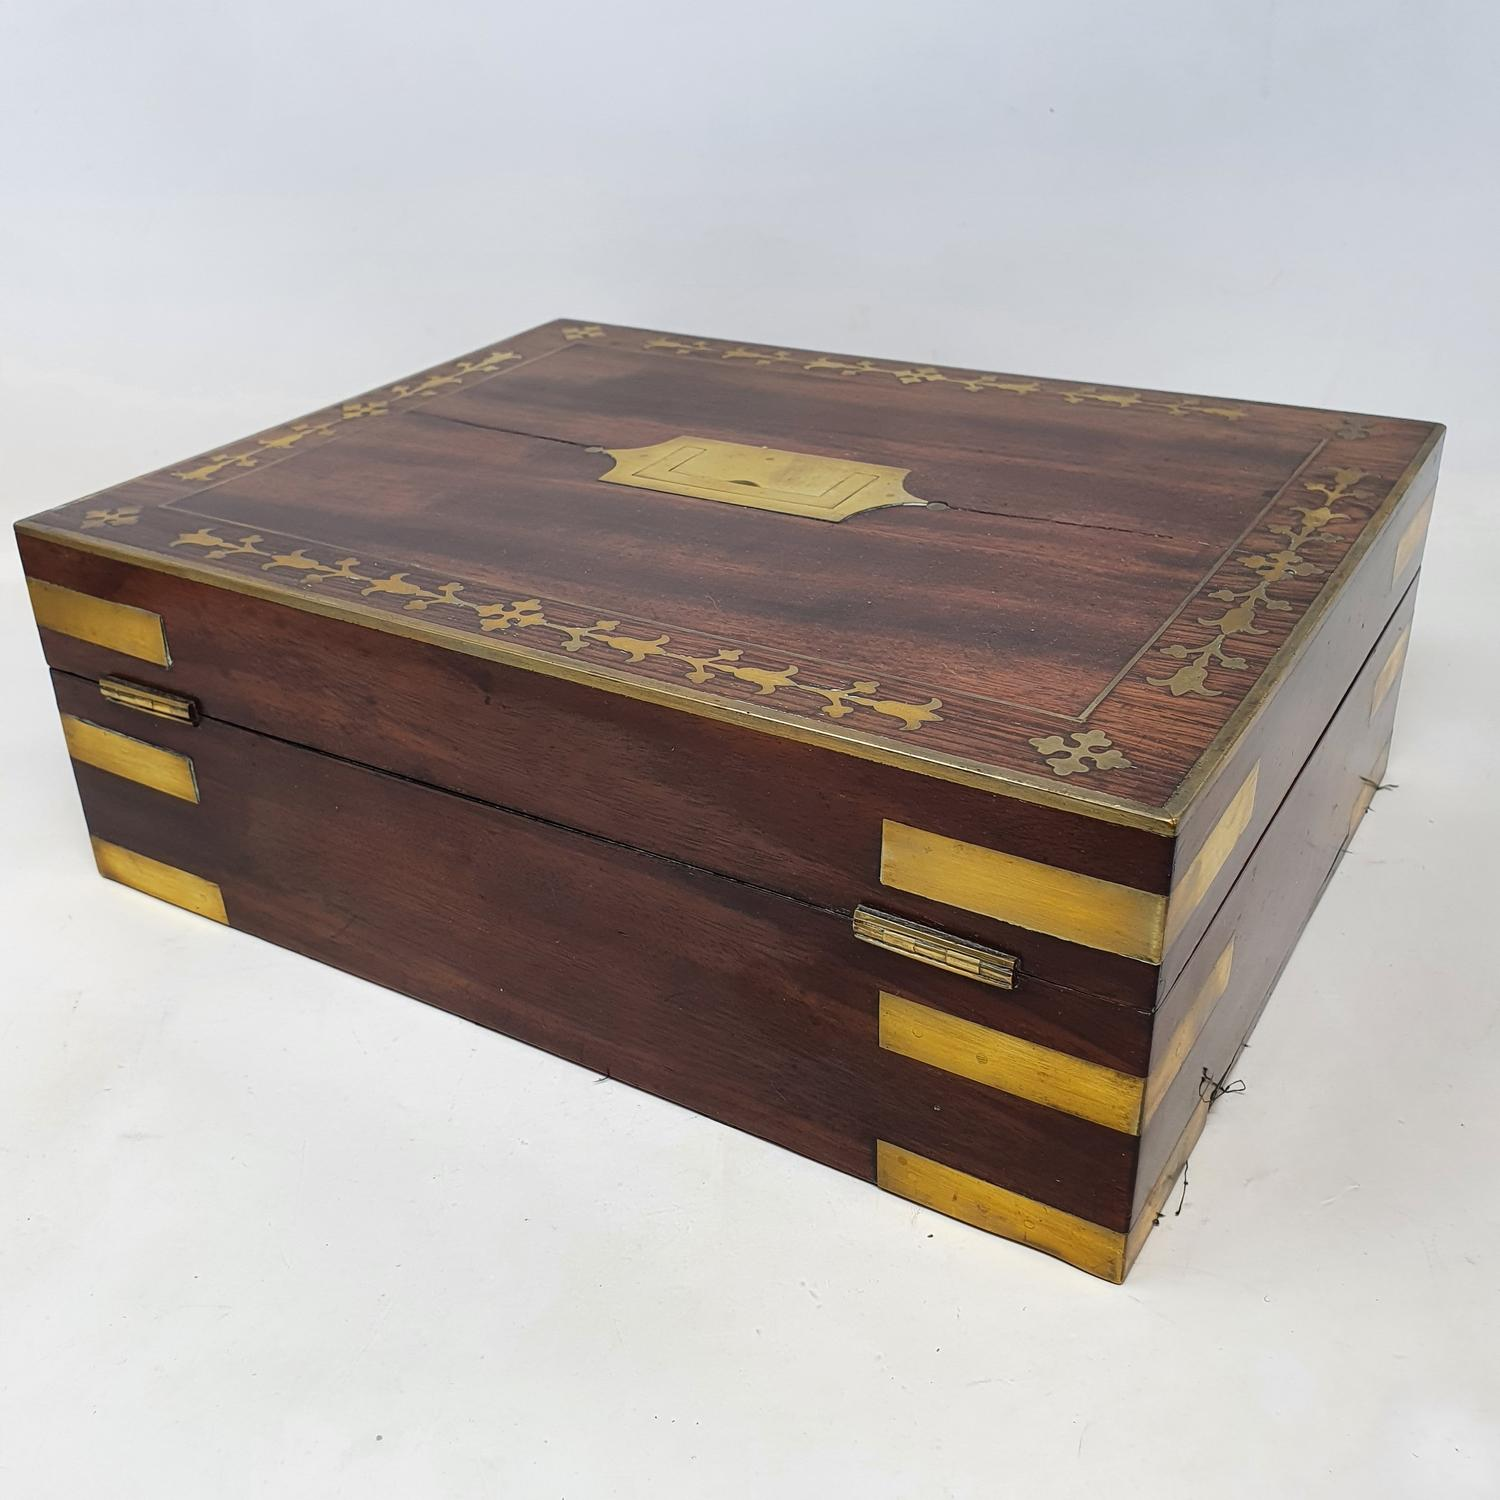 A 19th century mahogany and brass bound jewellery box, with a fitted interior, 30 cm wide - Image 5 of 5